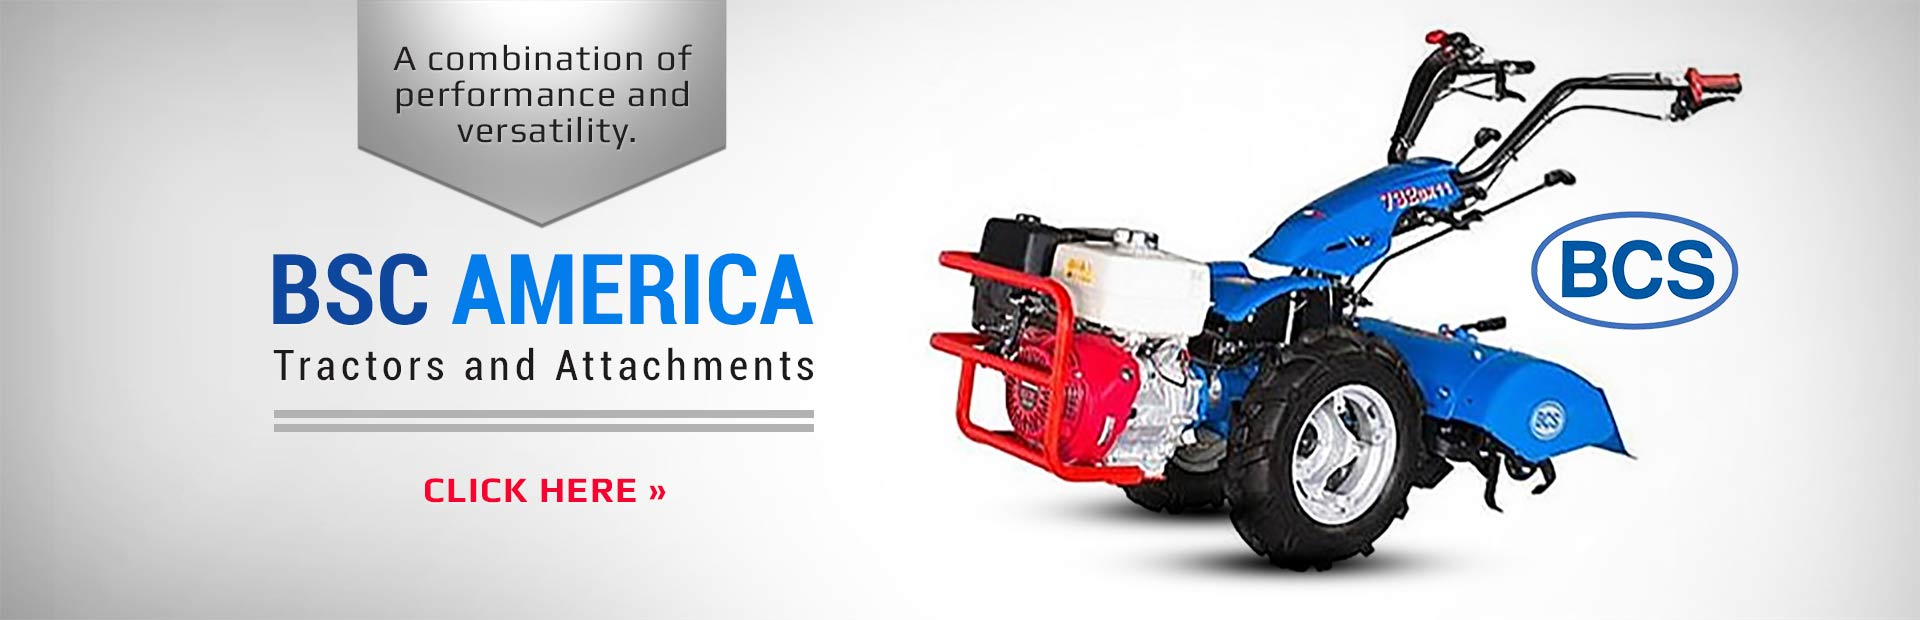 Bsc America Tractors And Attachments Click Here To View The Showcase